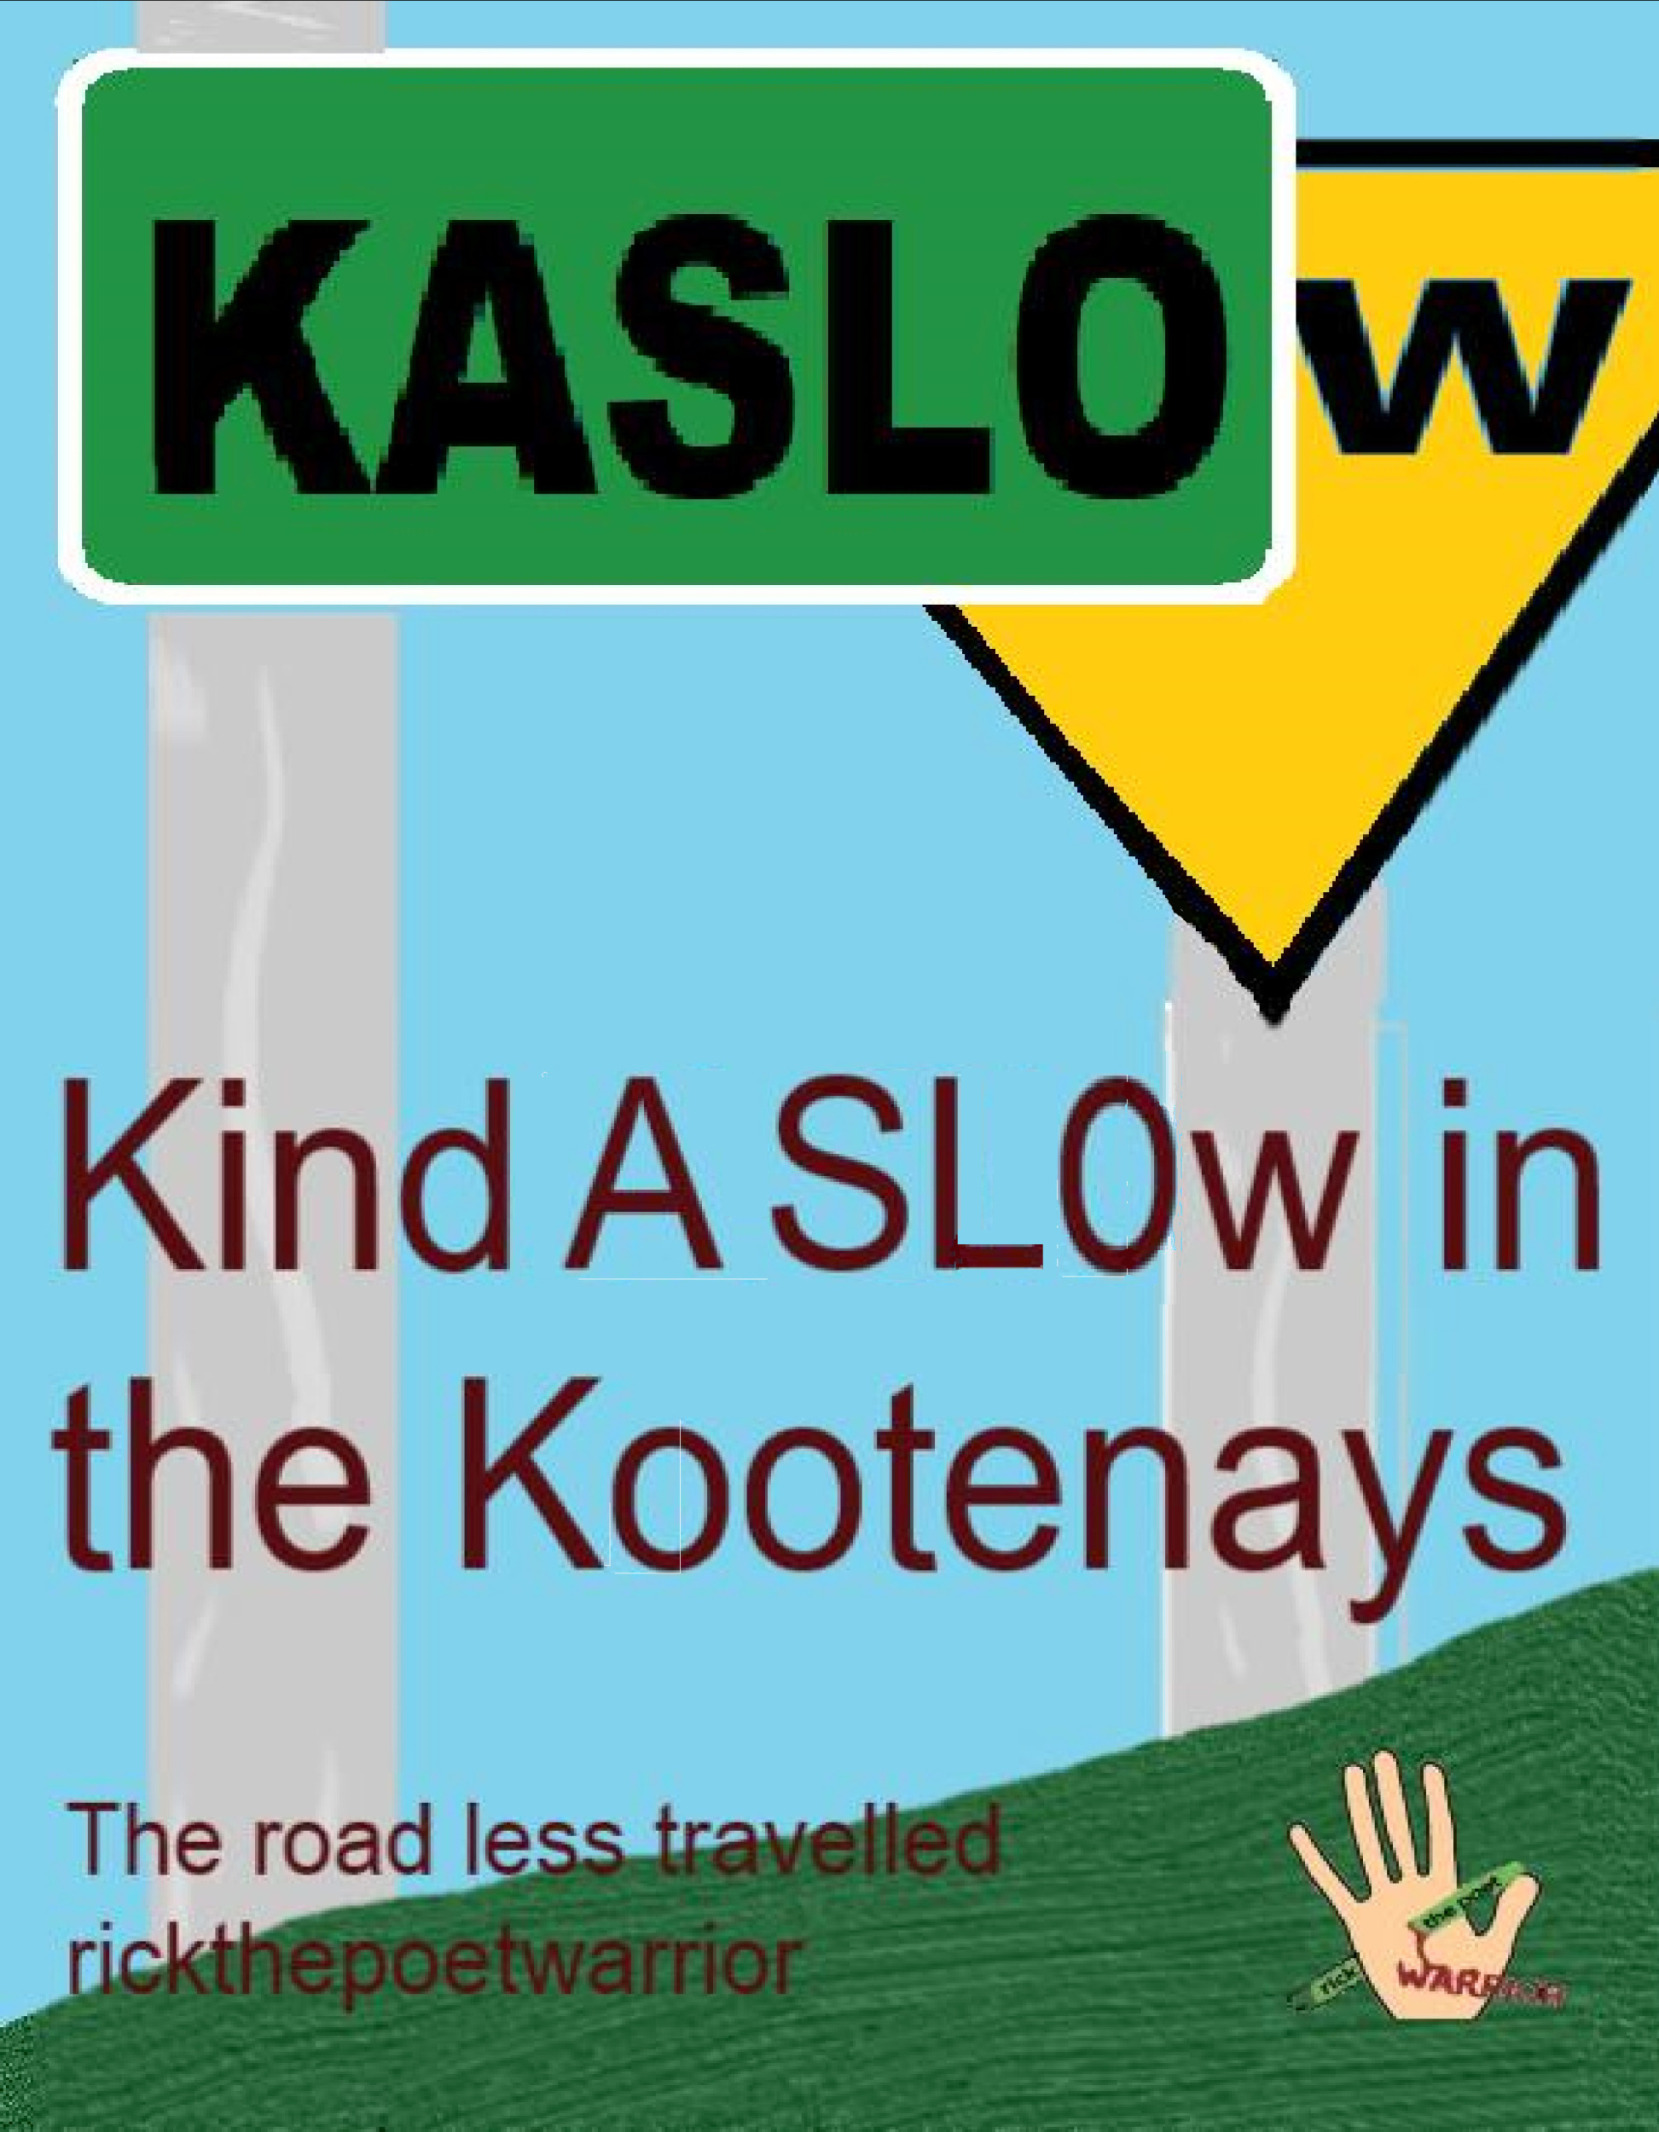 Kind A SLOw In the Kootenays